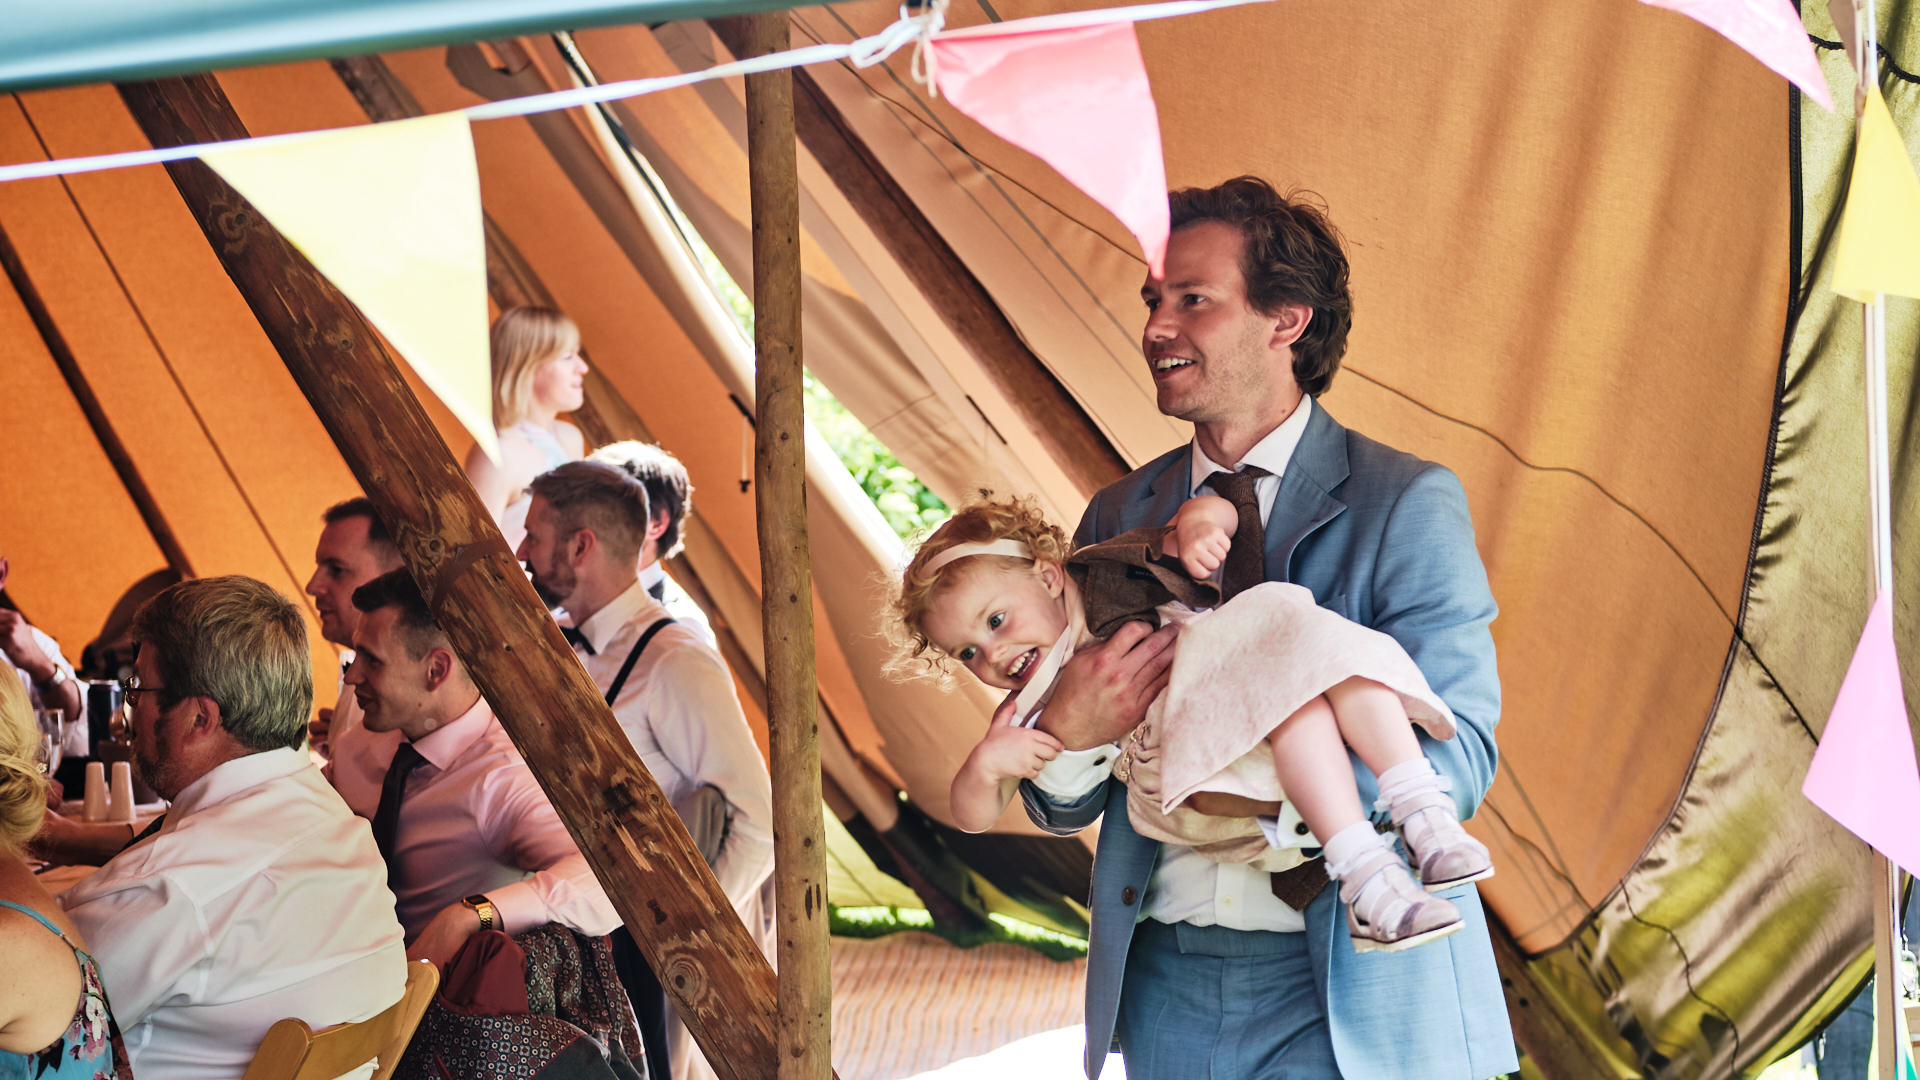 colour photograph of a wedding guest carrying his young daughter during a wedding reception